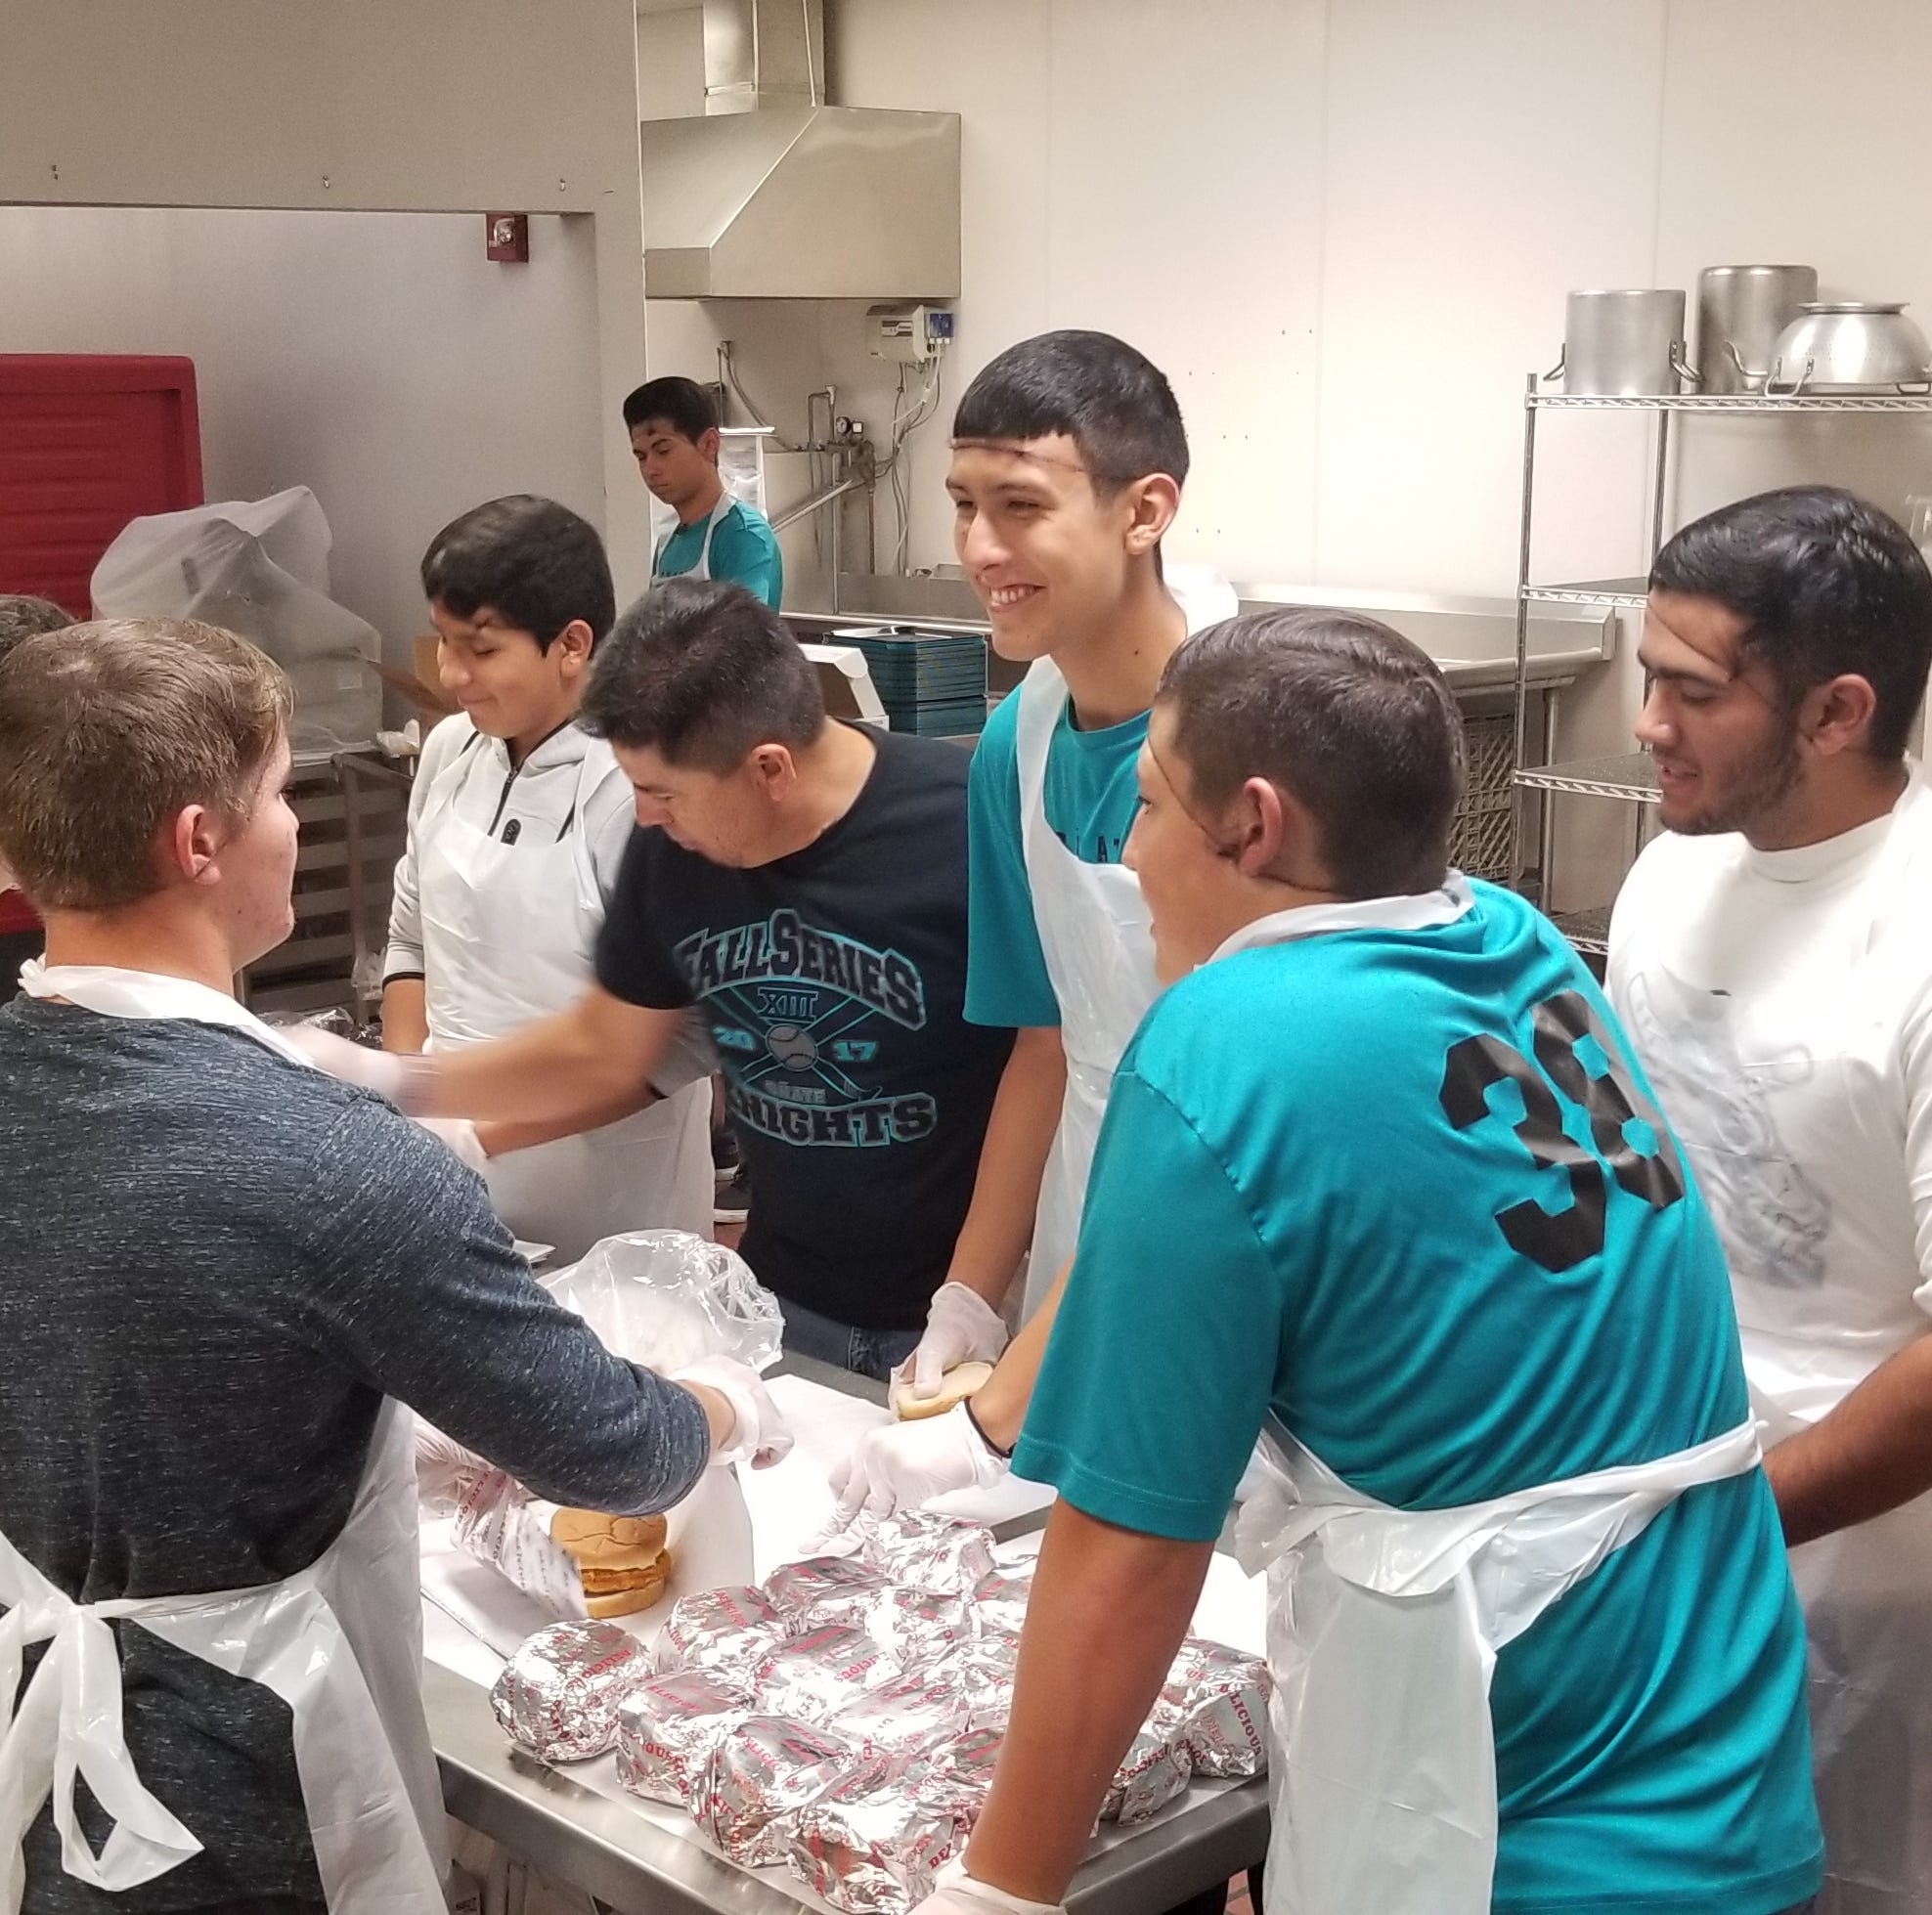 Oñate baseball team participates in Random Acts of Kindness challenge